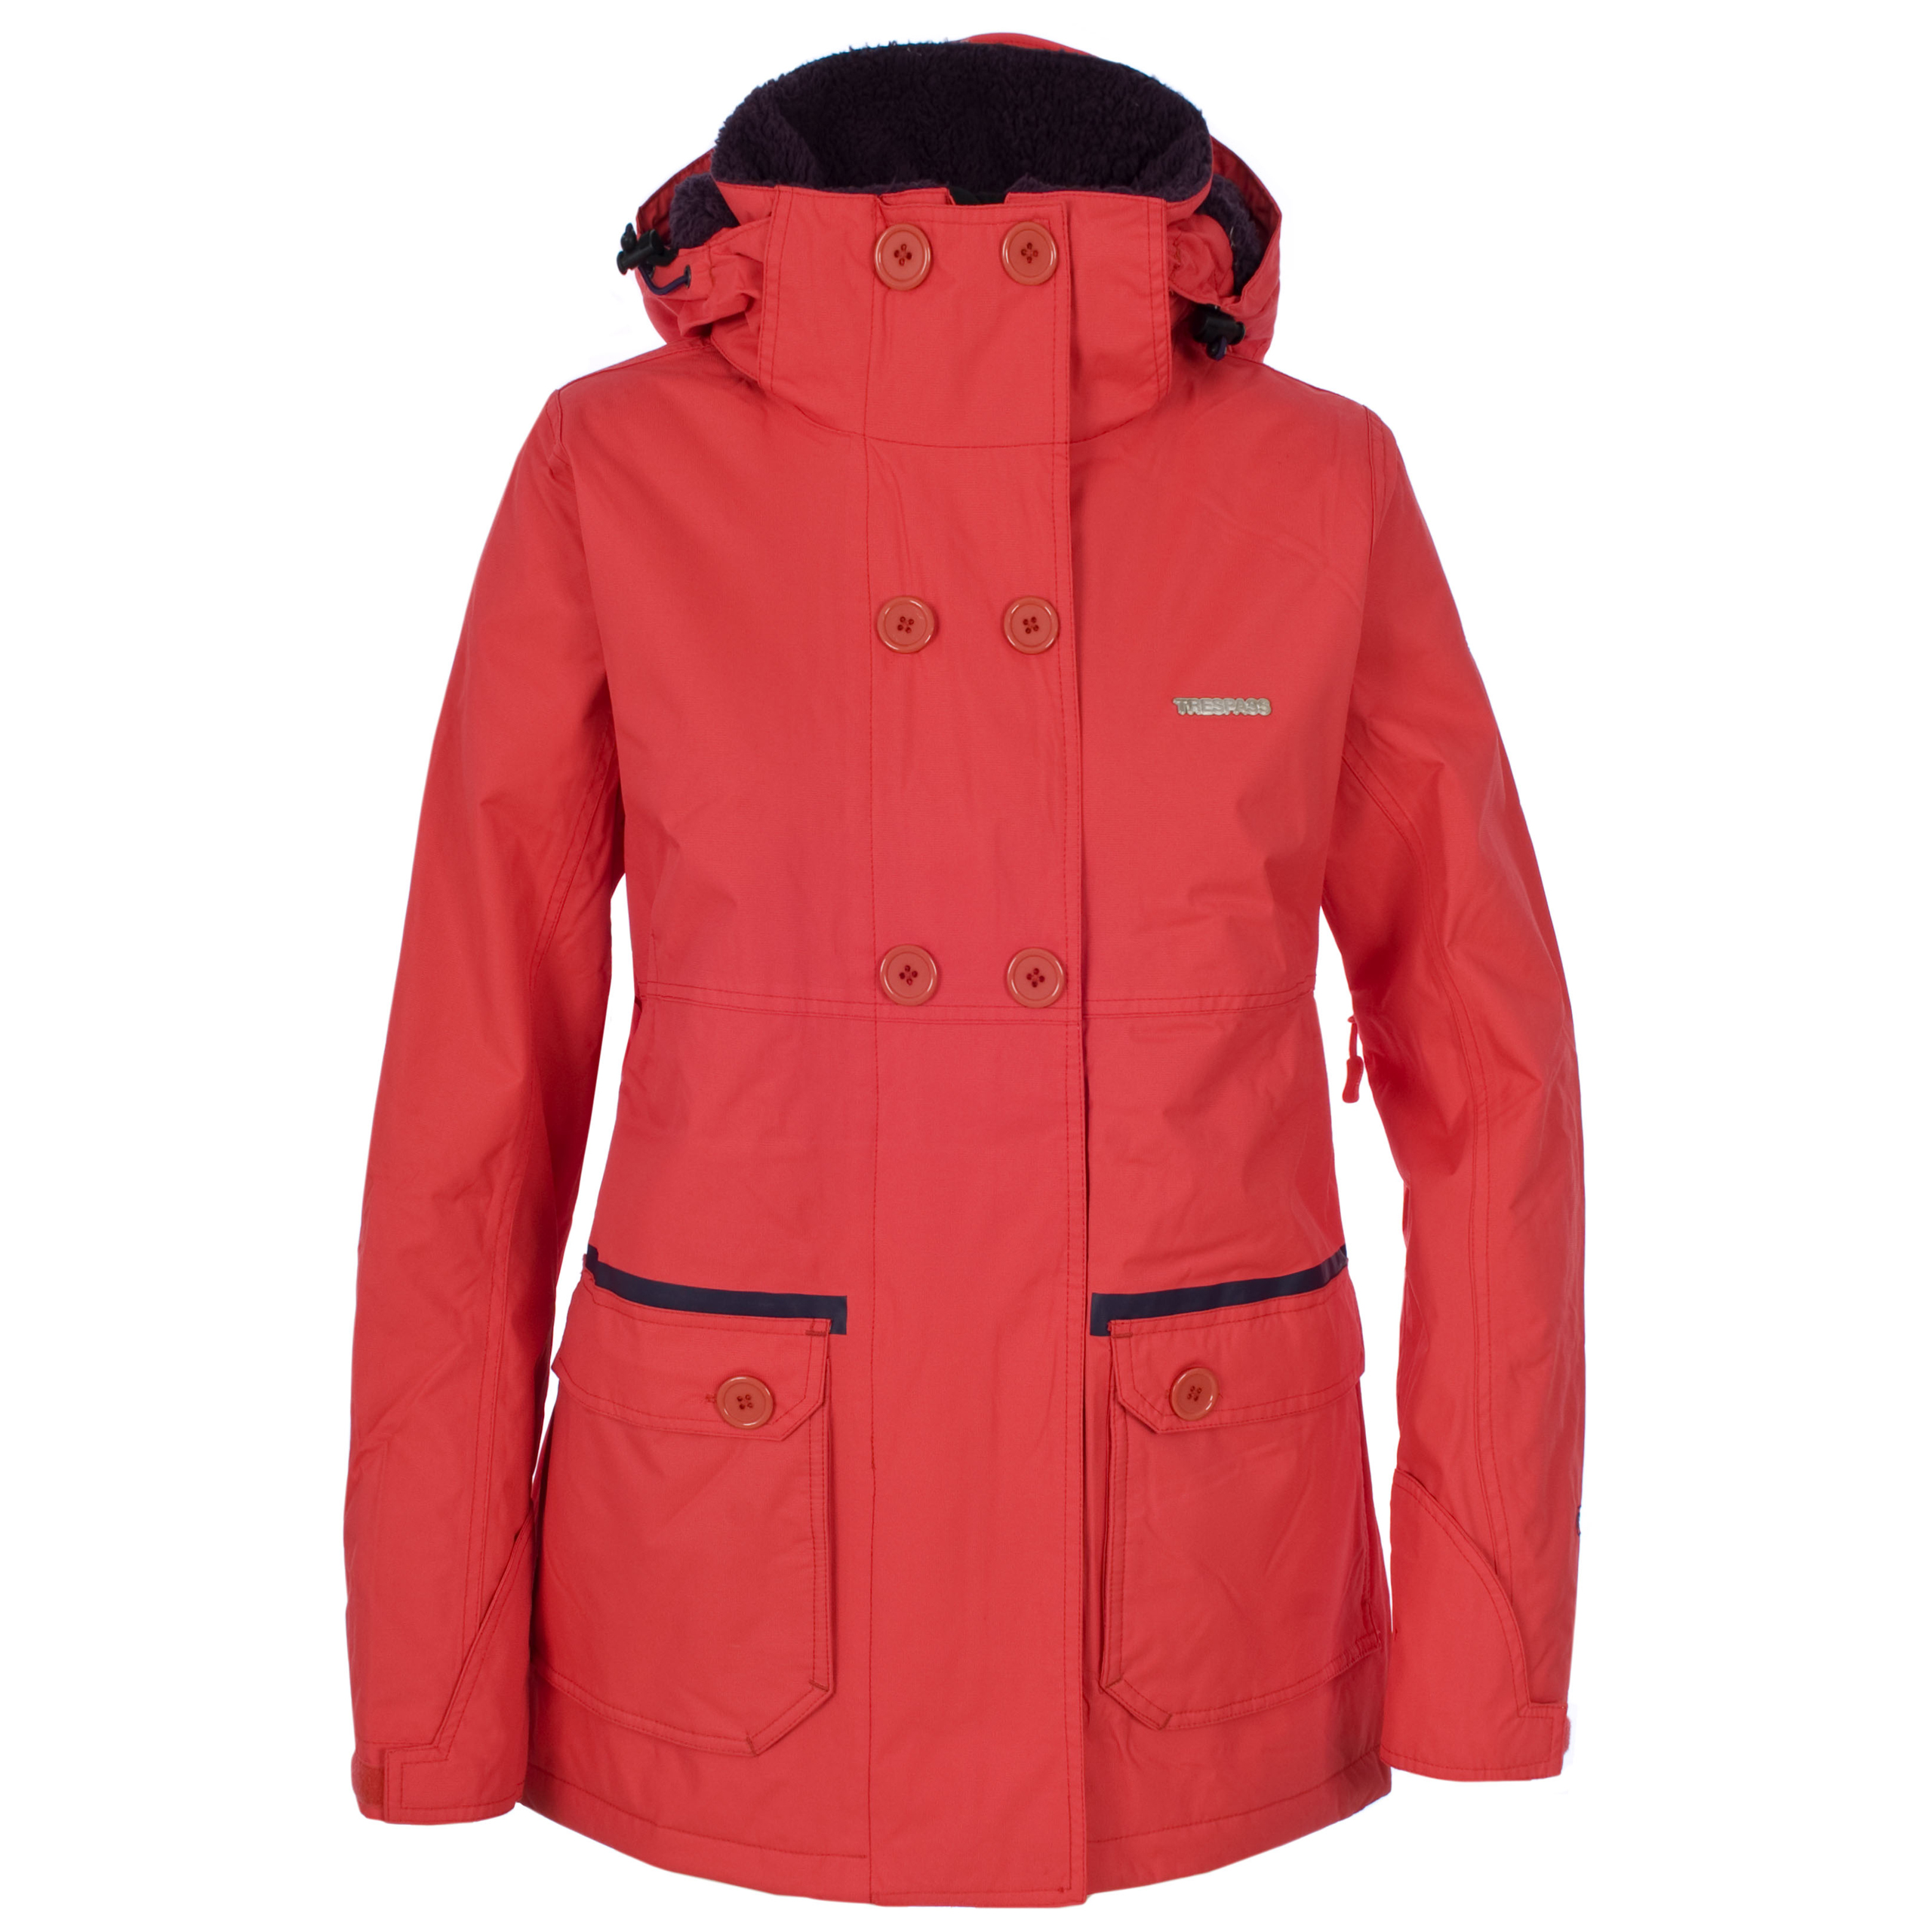 Men's Winter Jackets. Clothing. Women. Womens Coats & Jackets. Men's Winter Jackets. Showing 48 of results that match your query. Product - Natural Gear Waterproof Insulated Parka Snow Camo Large. Product Image. Price $ Product Title. Natural Gear Waterproof Insulated Parka Snow Camo Large.